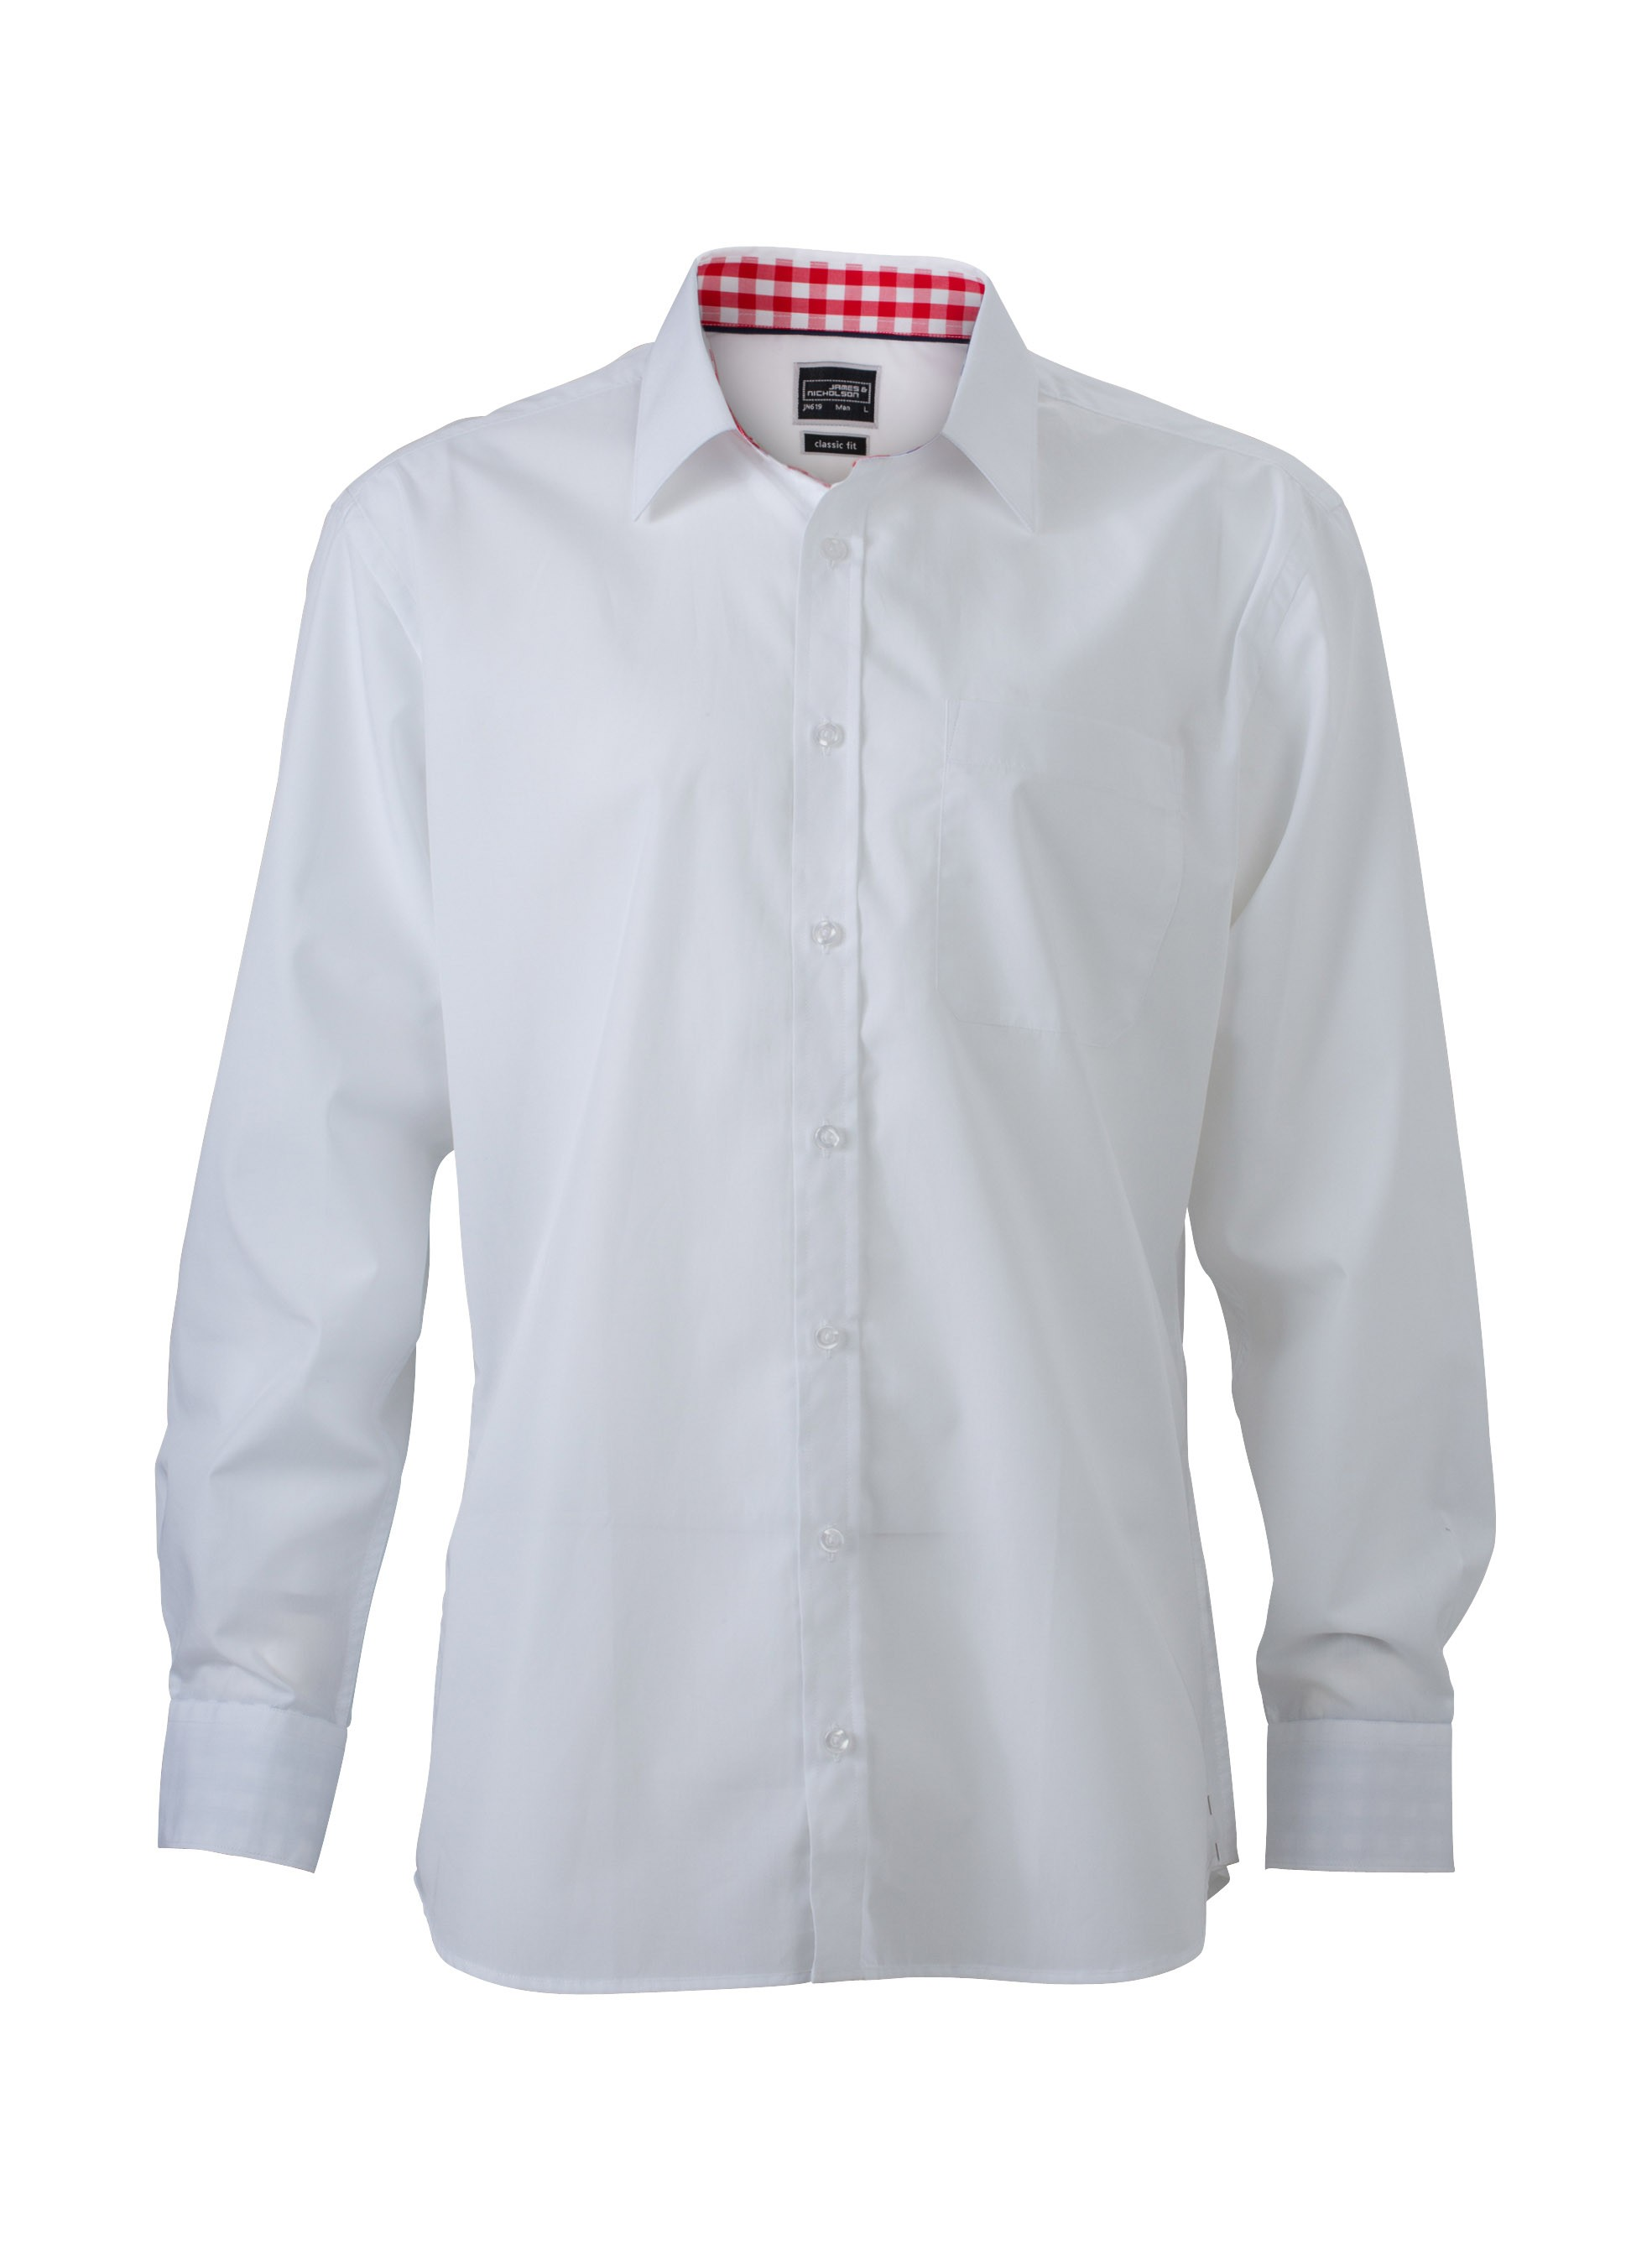 J&N men's plain shirt